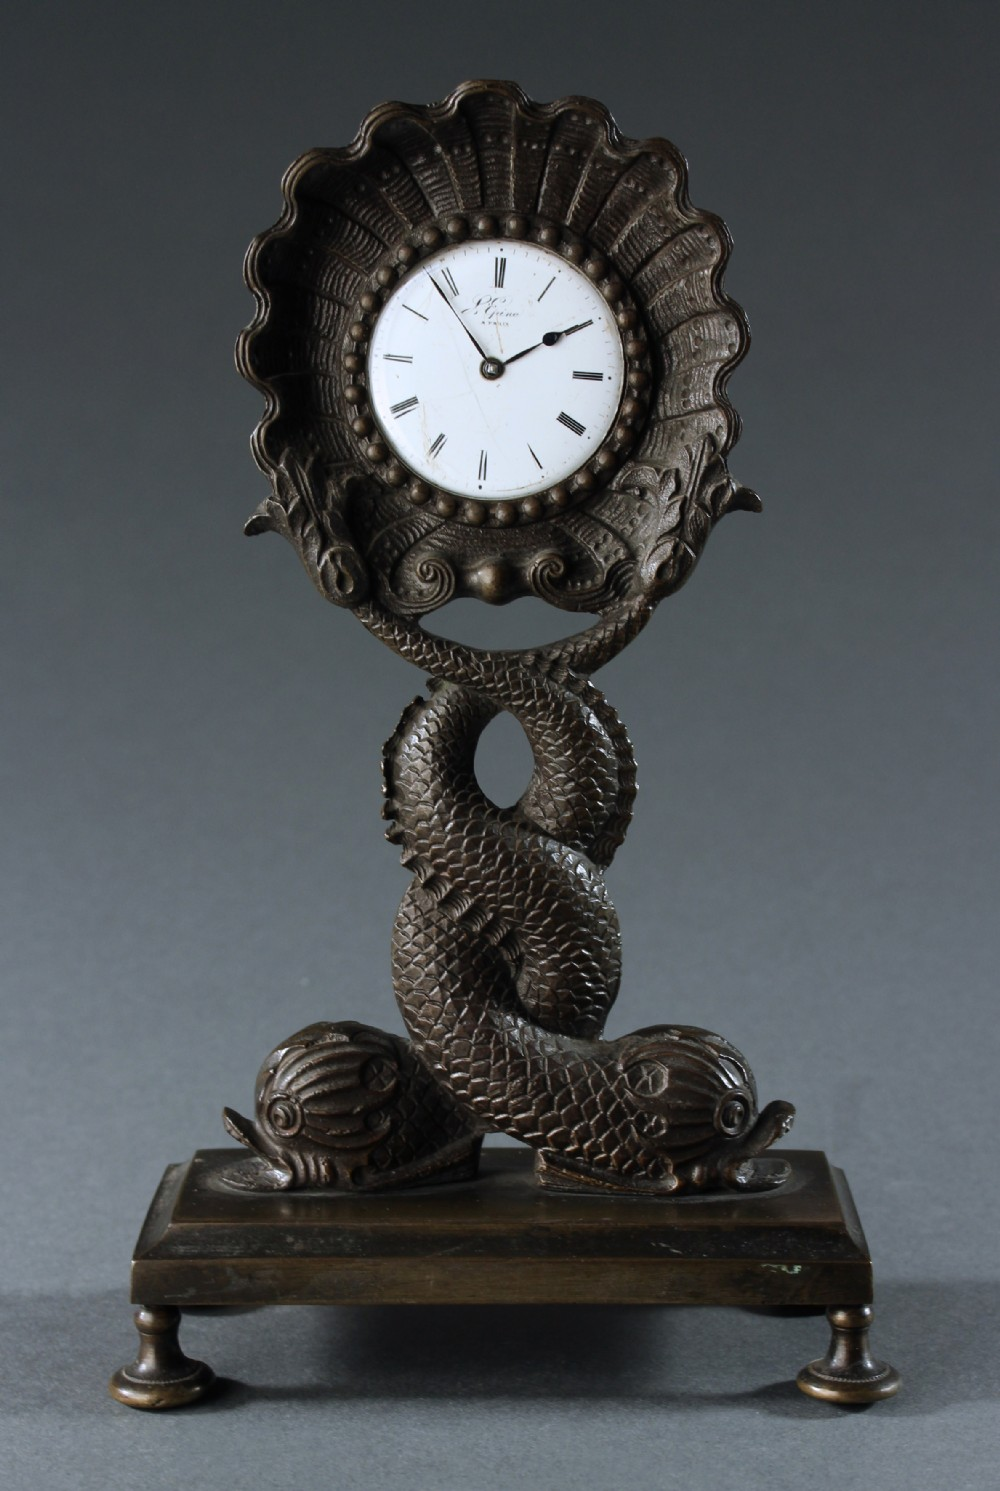 early 19th century sea serpent pocket watch holder